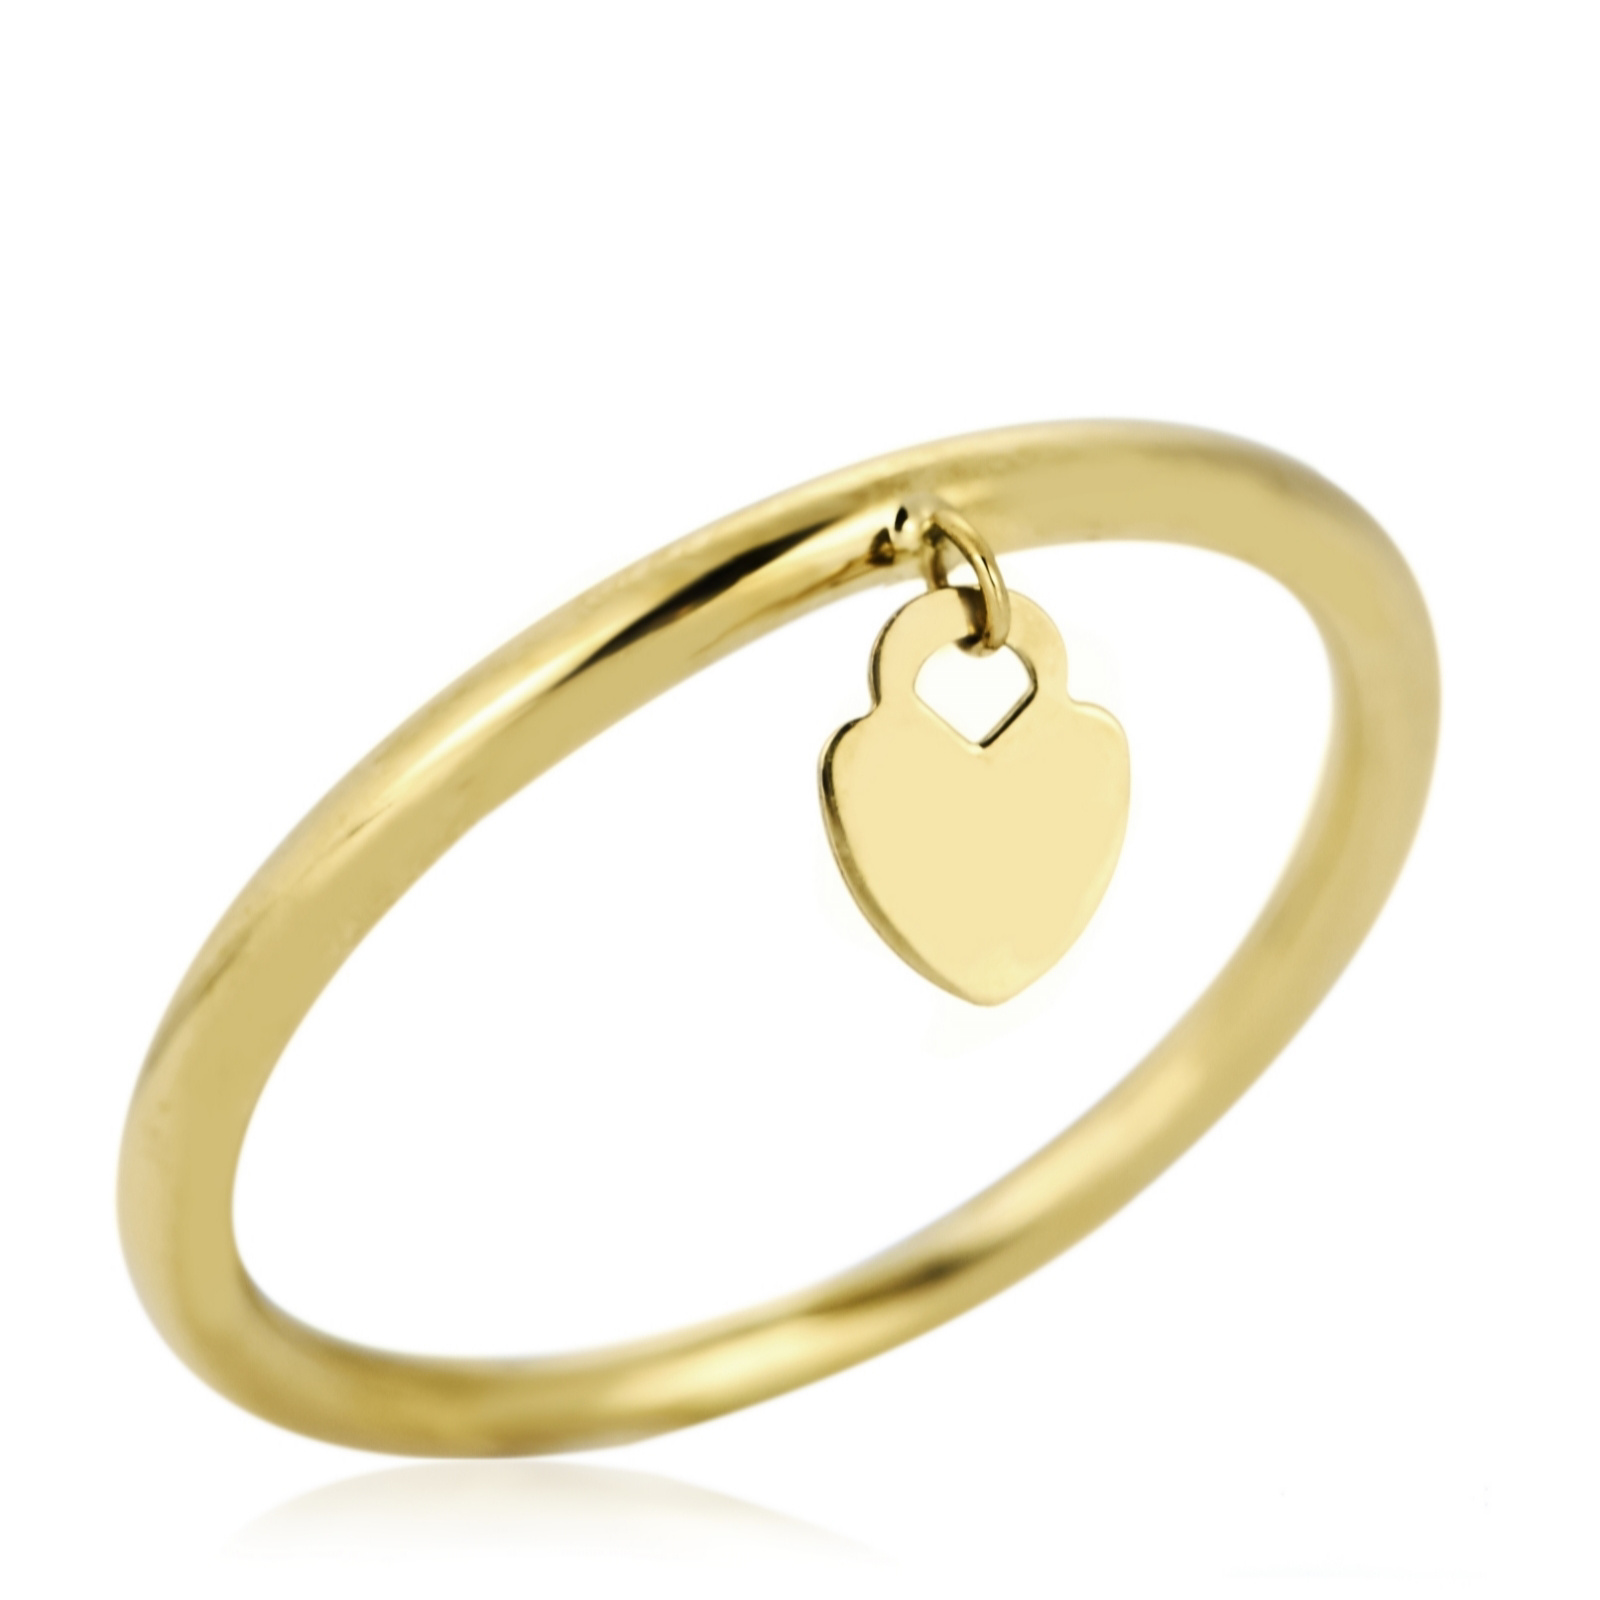 The Gold Room 9ct Gold Charm Drop Ring Page 1 QVC UK